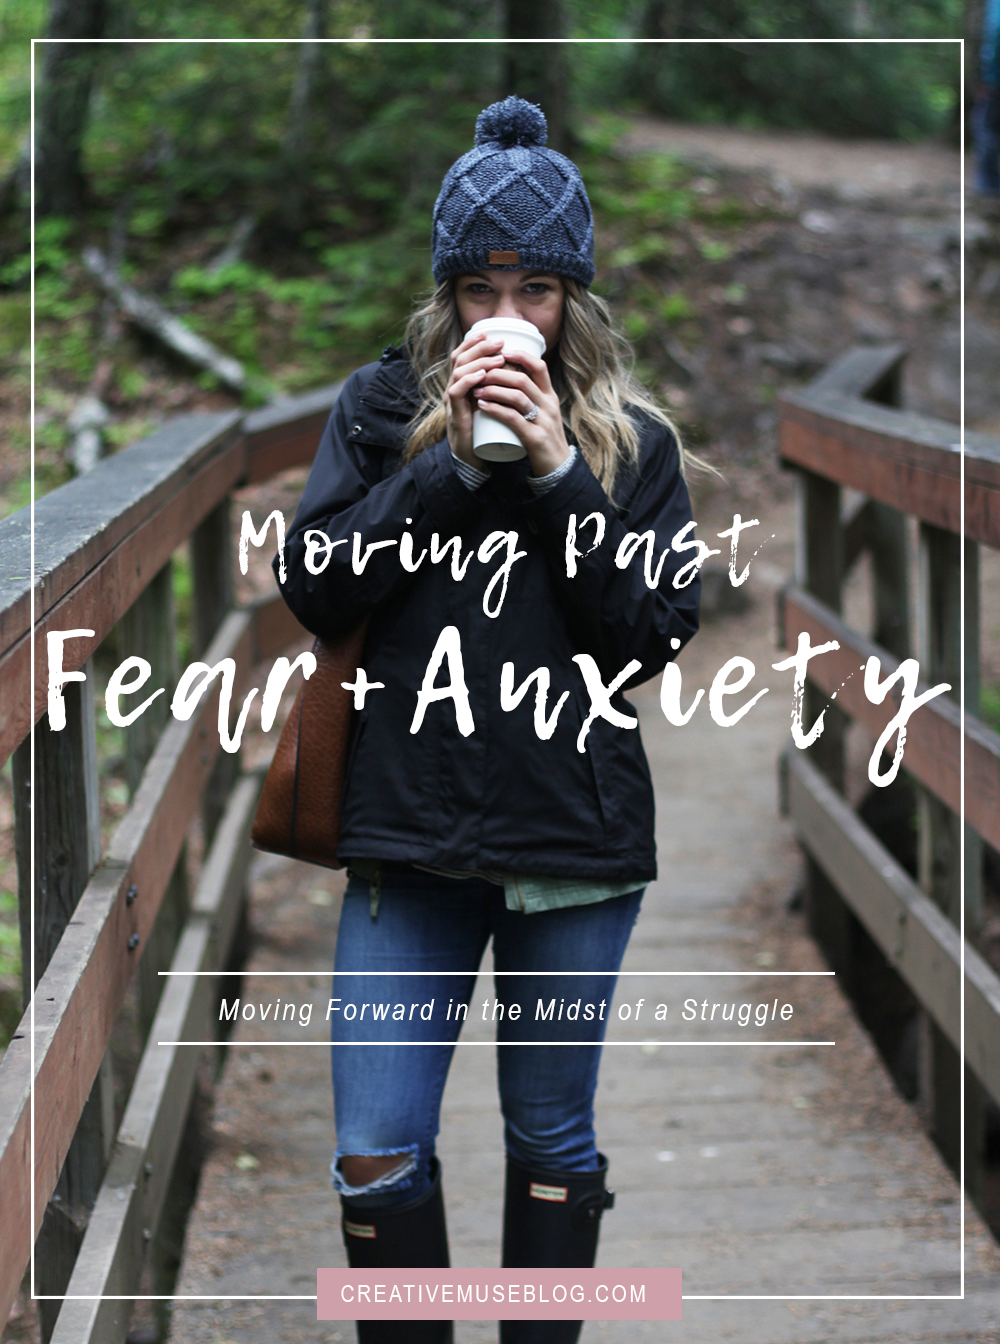 Moving Past Fear + Anxiety | Christian Girl Resource | Christian Blog | Overcoming Fear | New Wife Blog